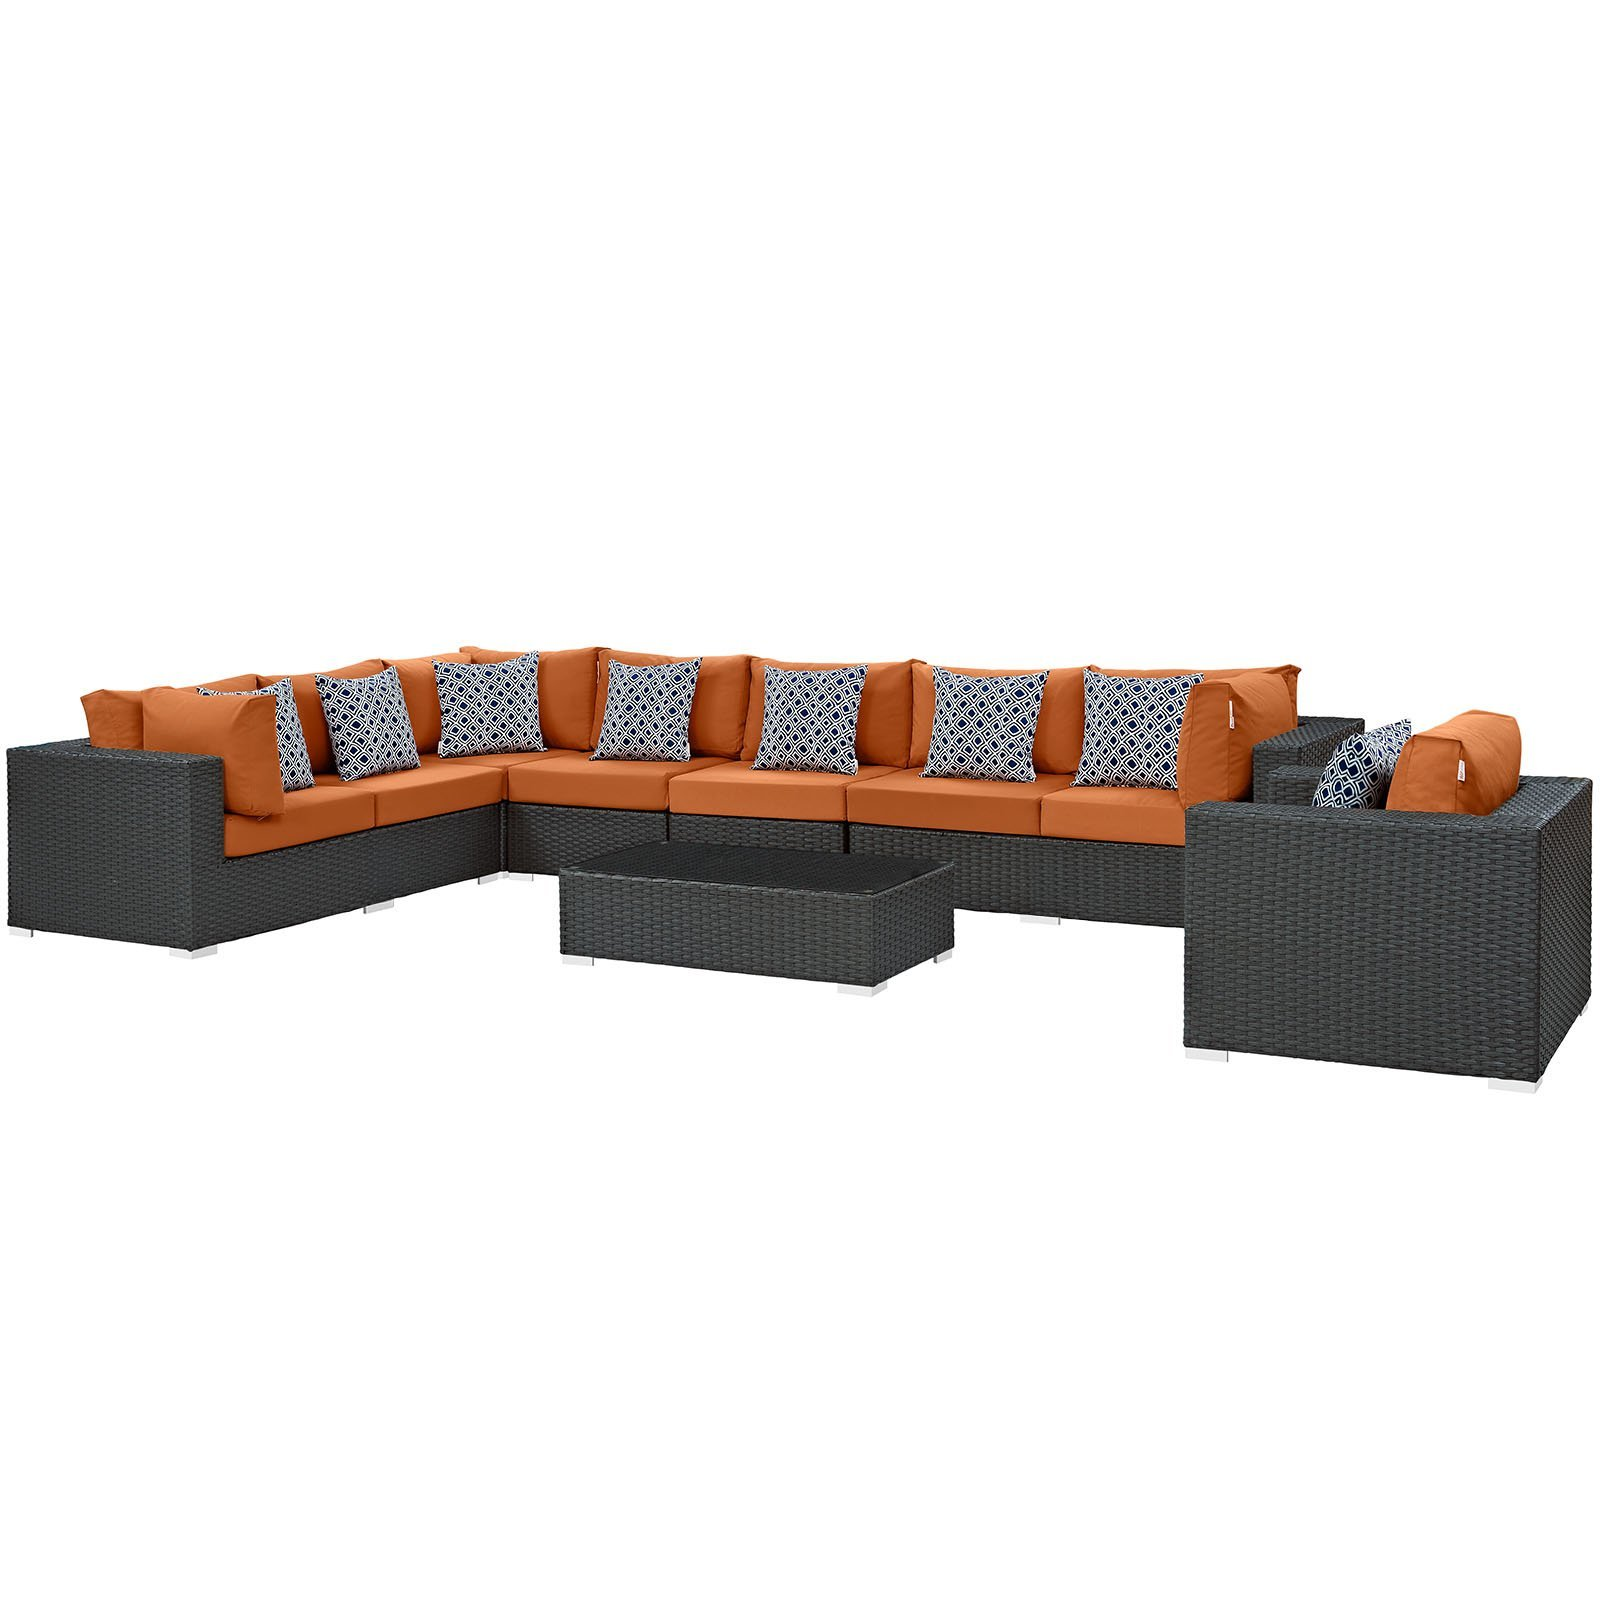 Sojourn 7 Piece Outdoor Patio Sunbrella® Sectional Set Chocolate Tuscan EEI-23